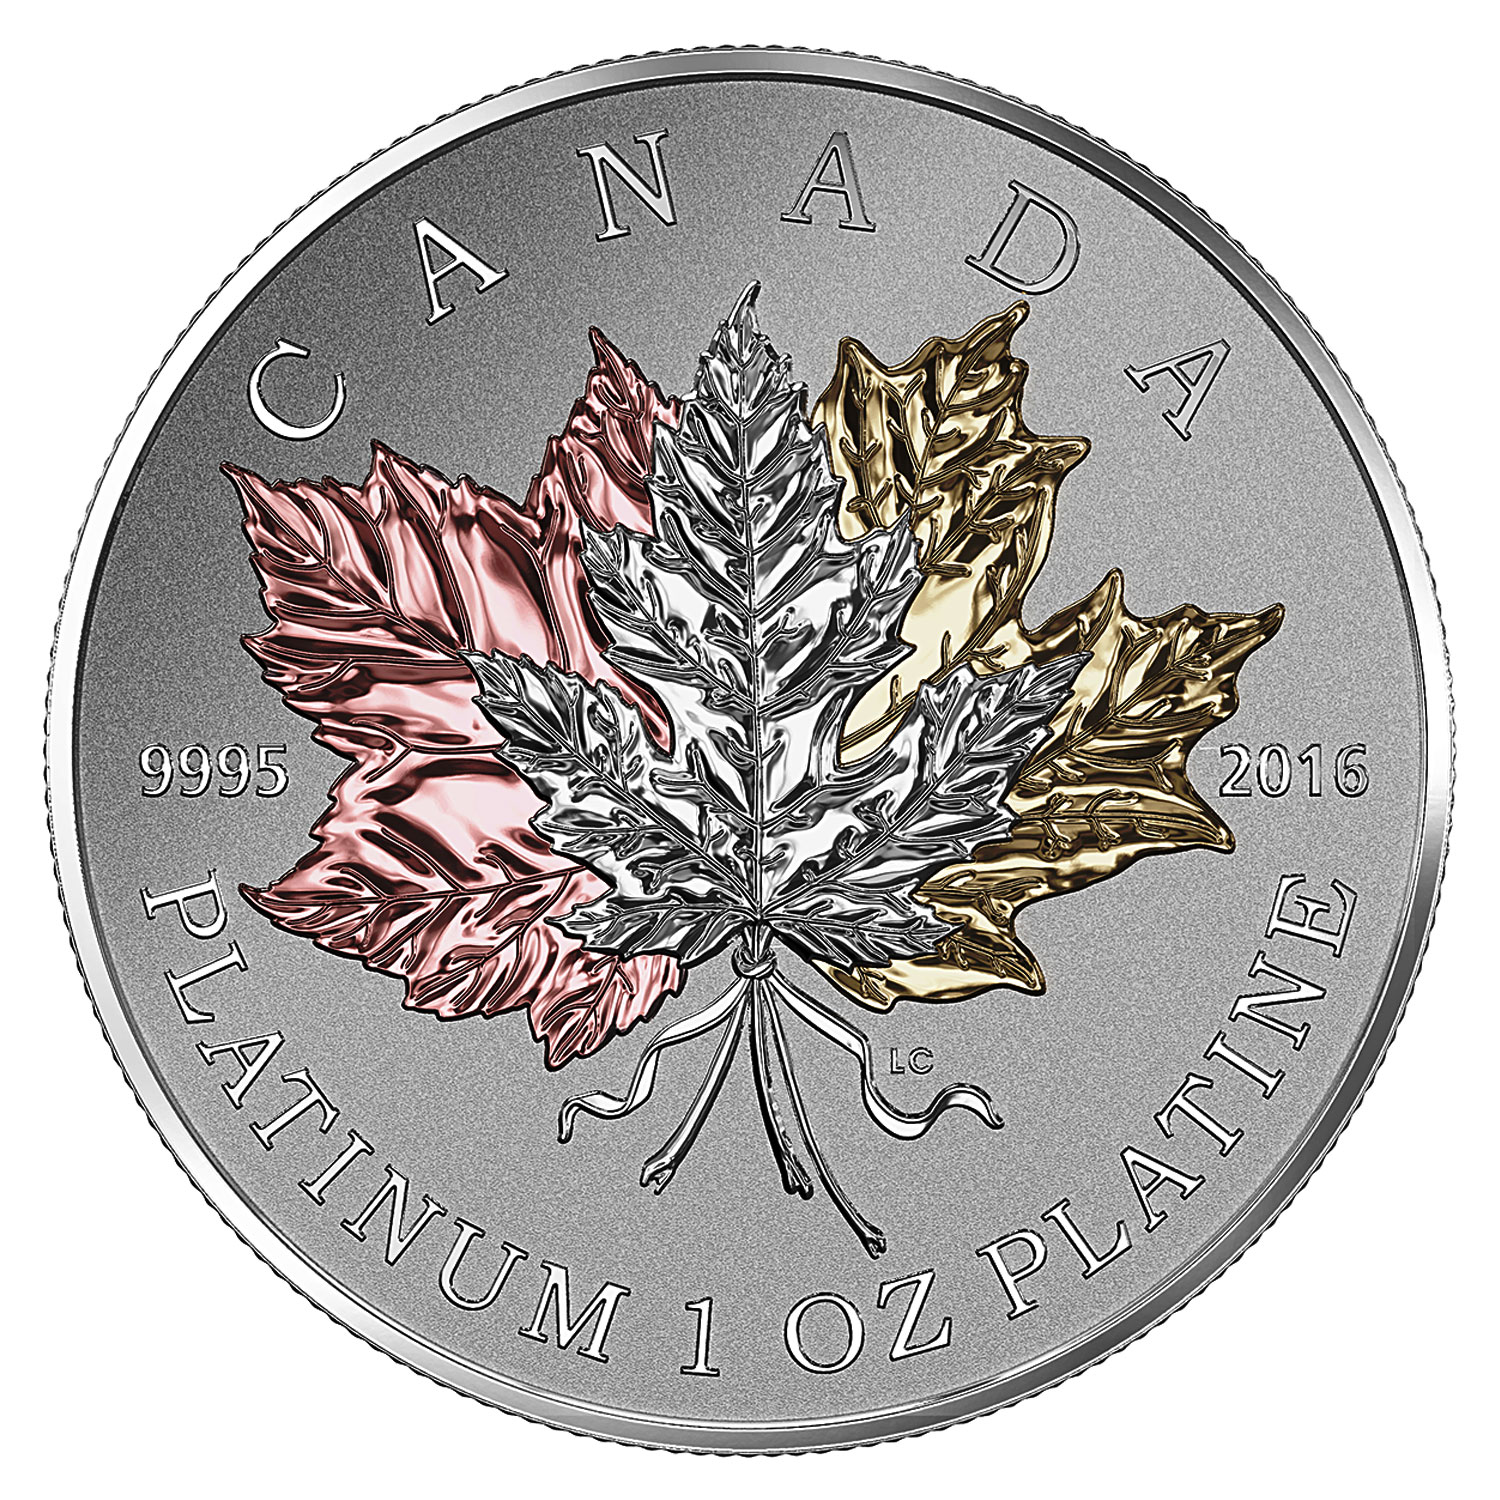 2016 Canada 1 oz Proof Platinum $300 Maple Leaf Forever